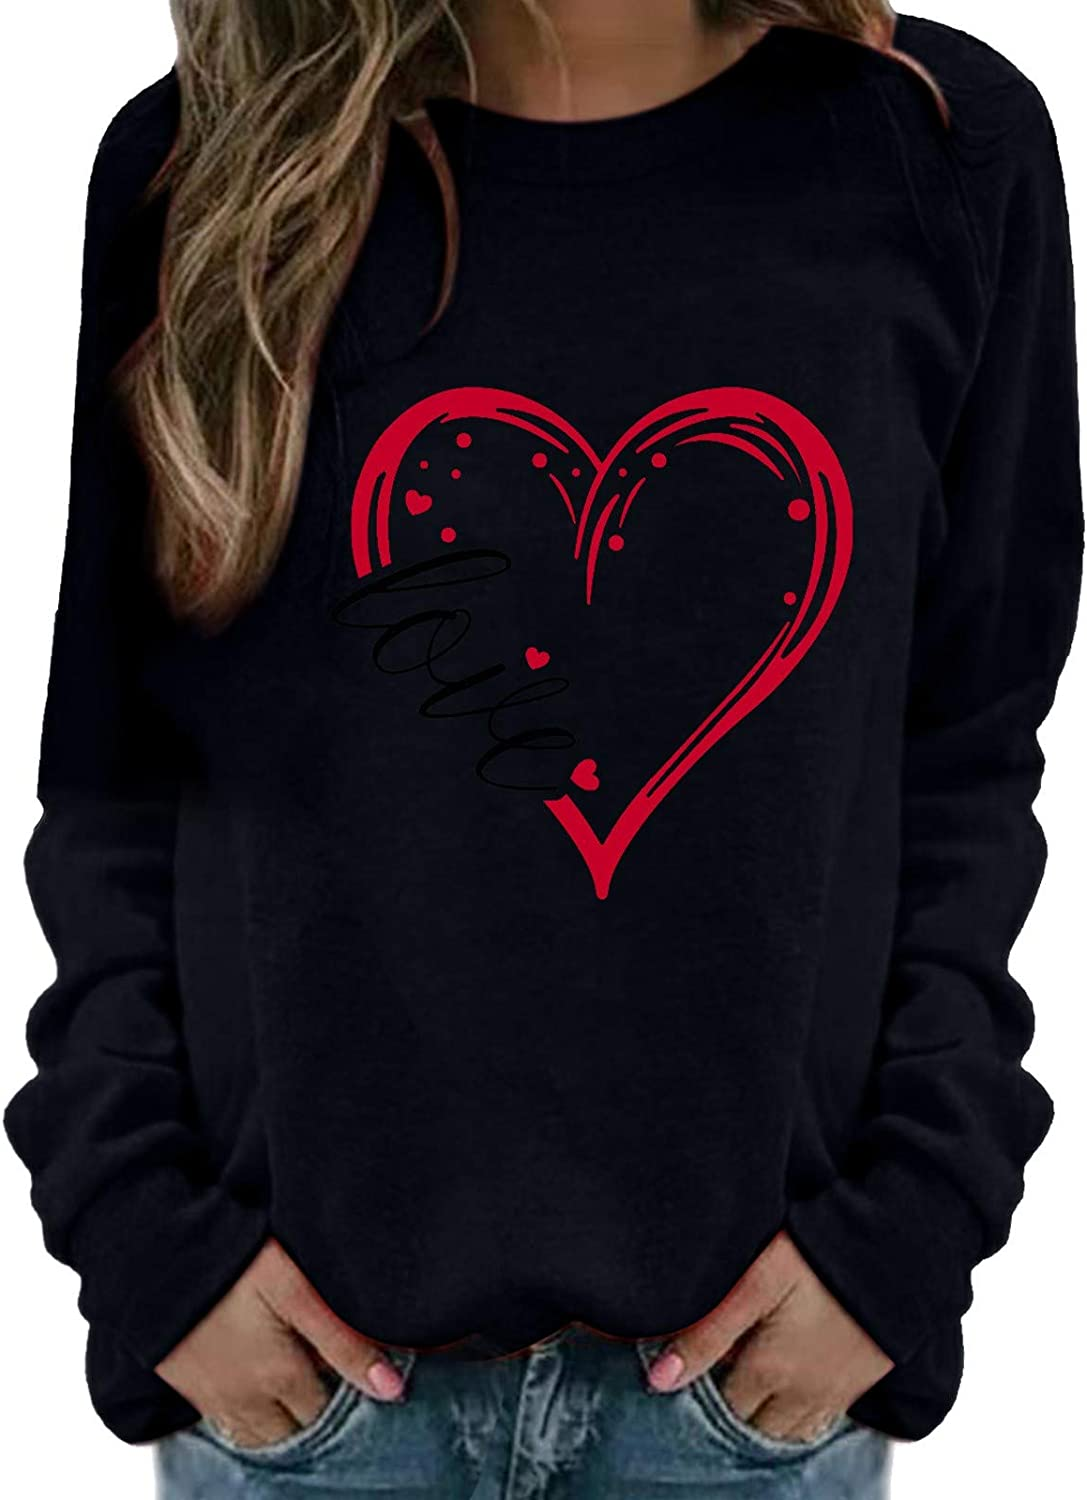 Oversized Sweatshirt for Women, Tupenty Women's Pullover Valentines Day Heart Print Crewneck Casual Long Sleeve Shirts